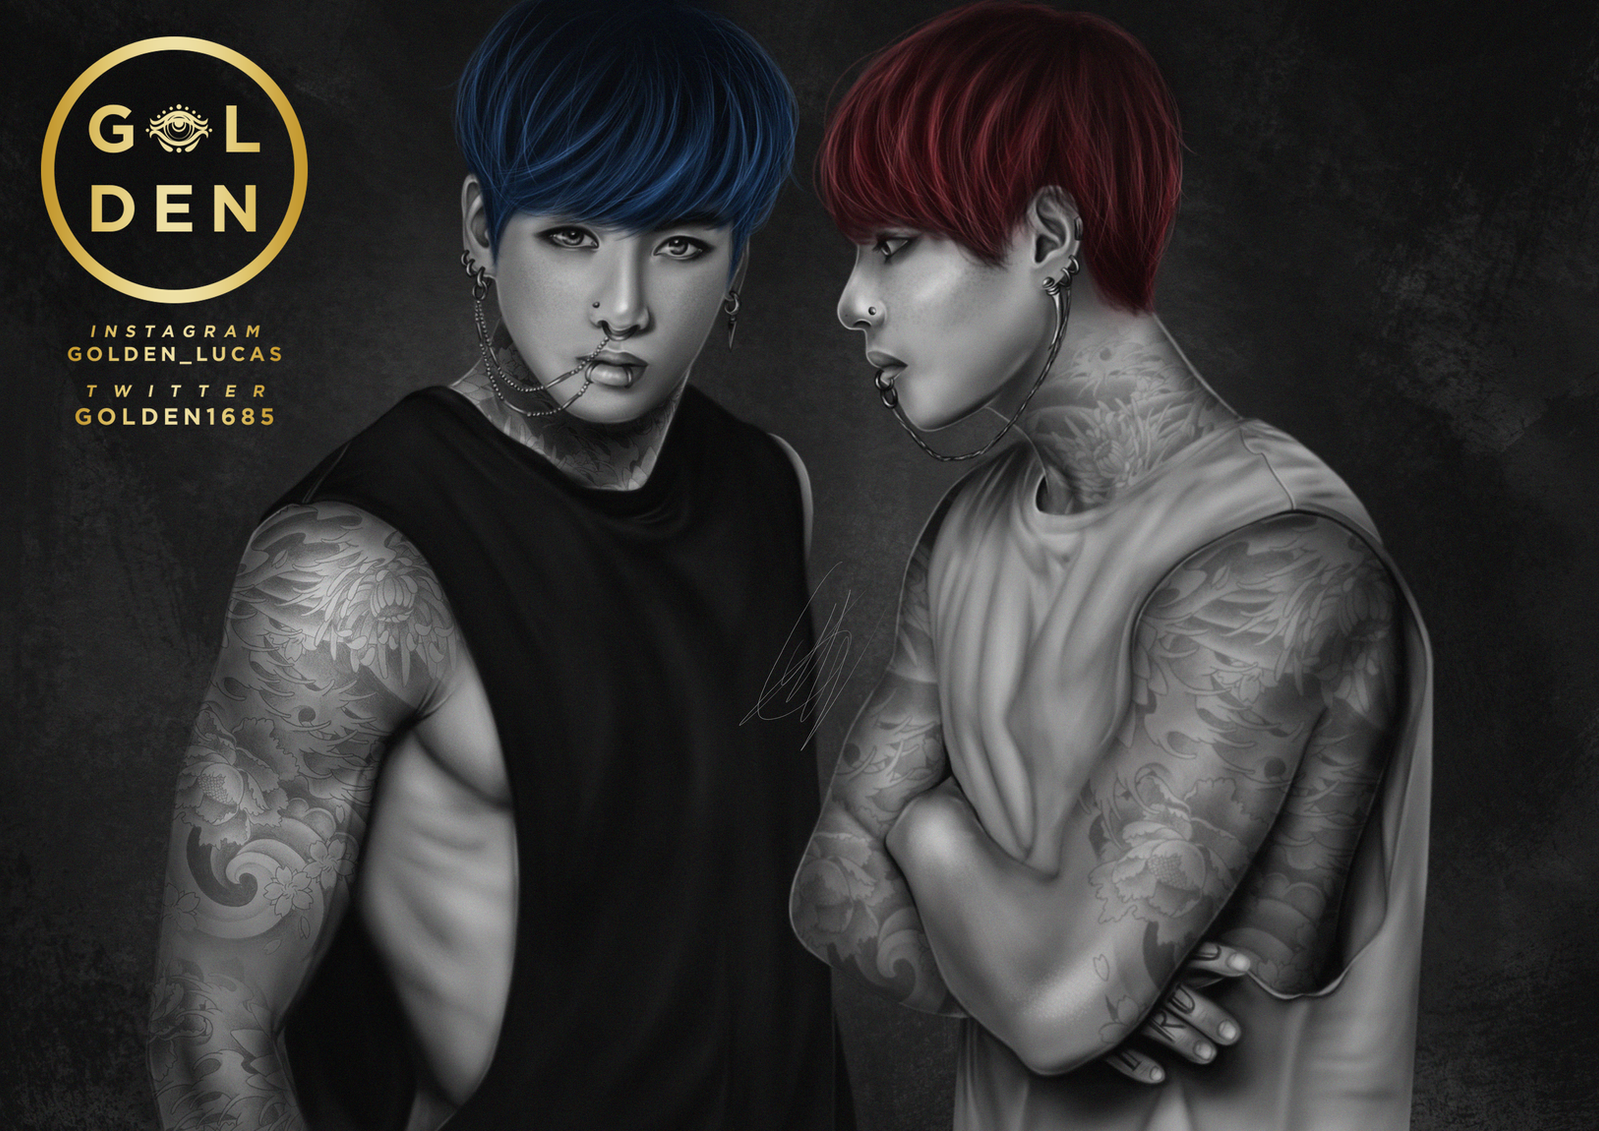 Jungkook Tattoo Shop: Inked Boys By GOLDENDesignCover On